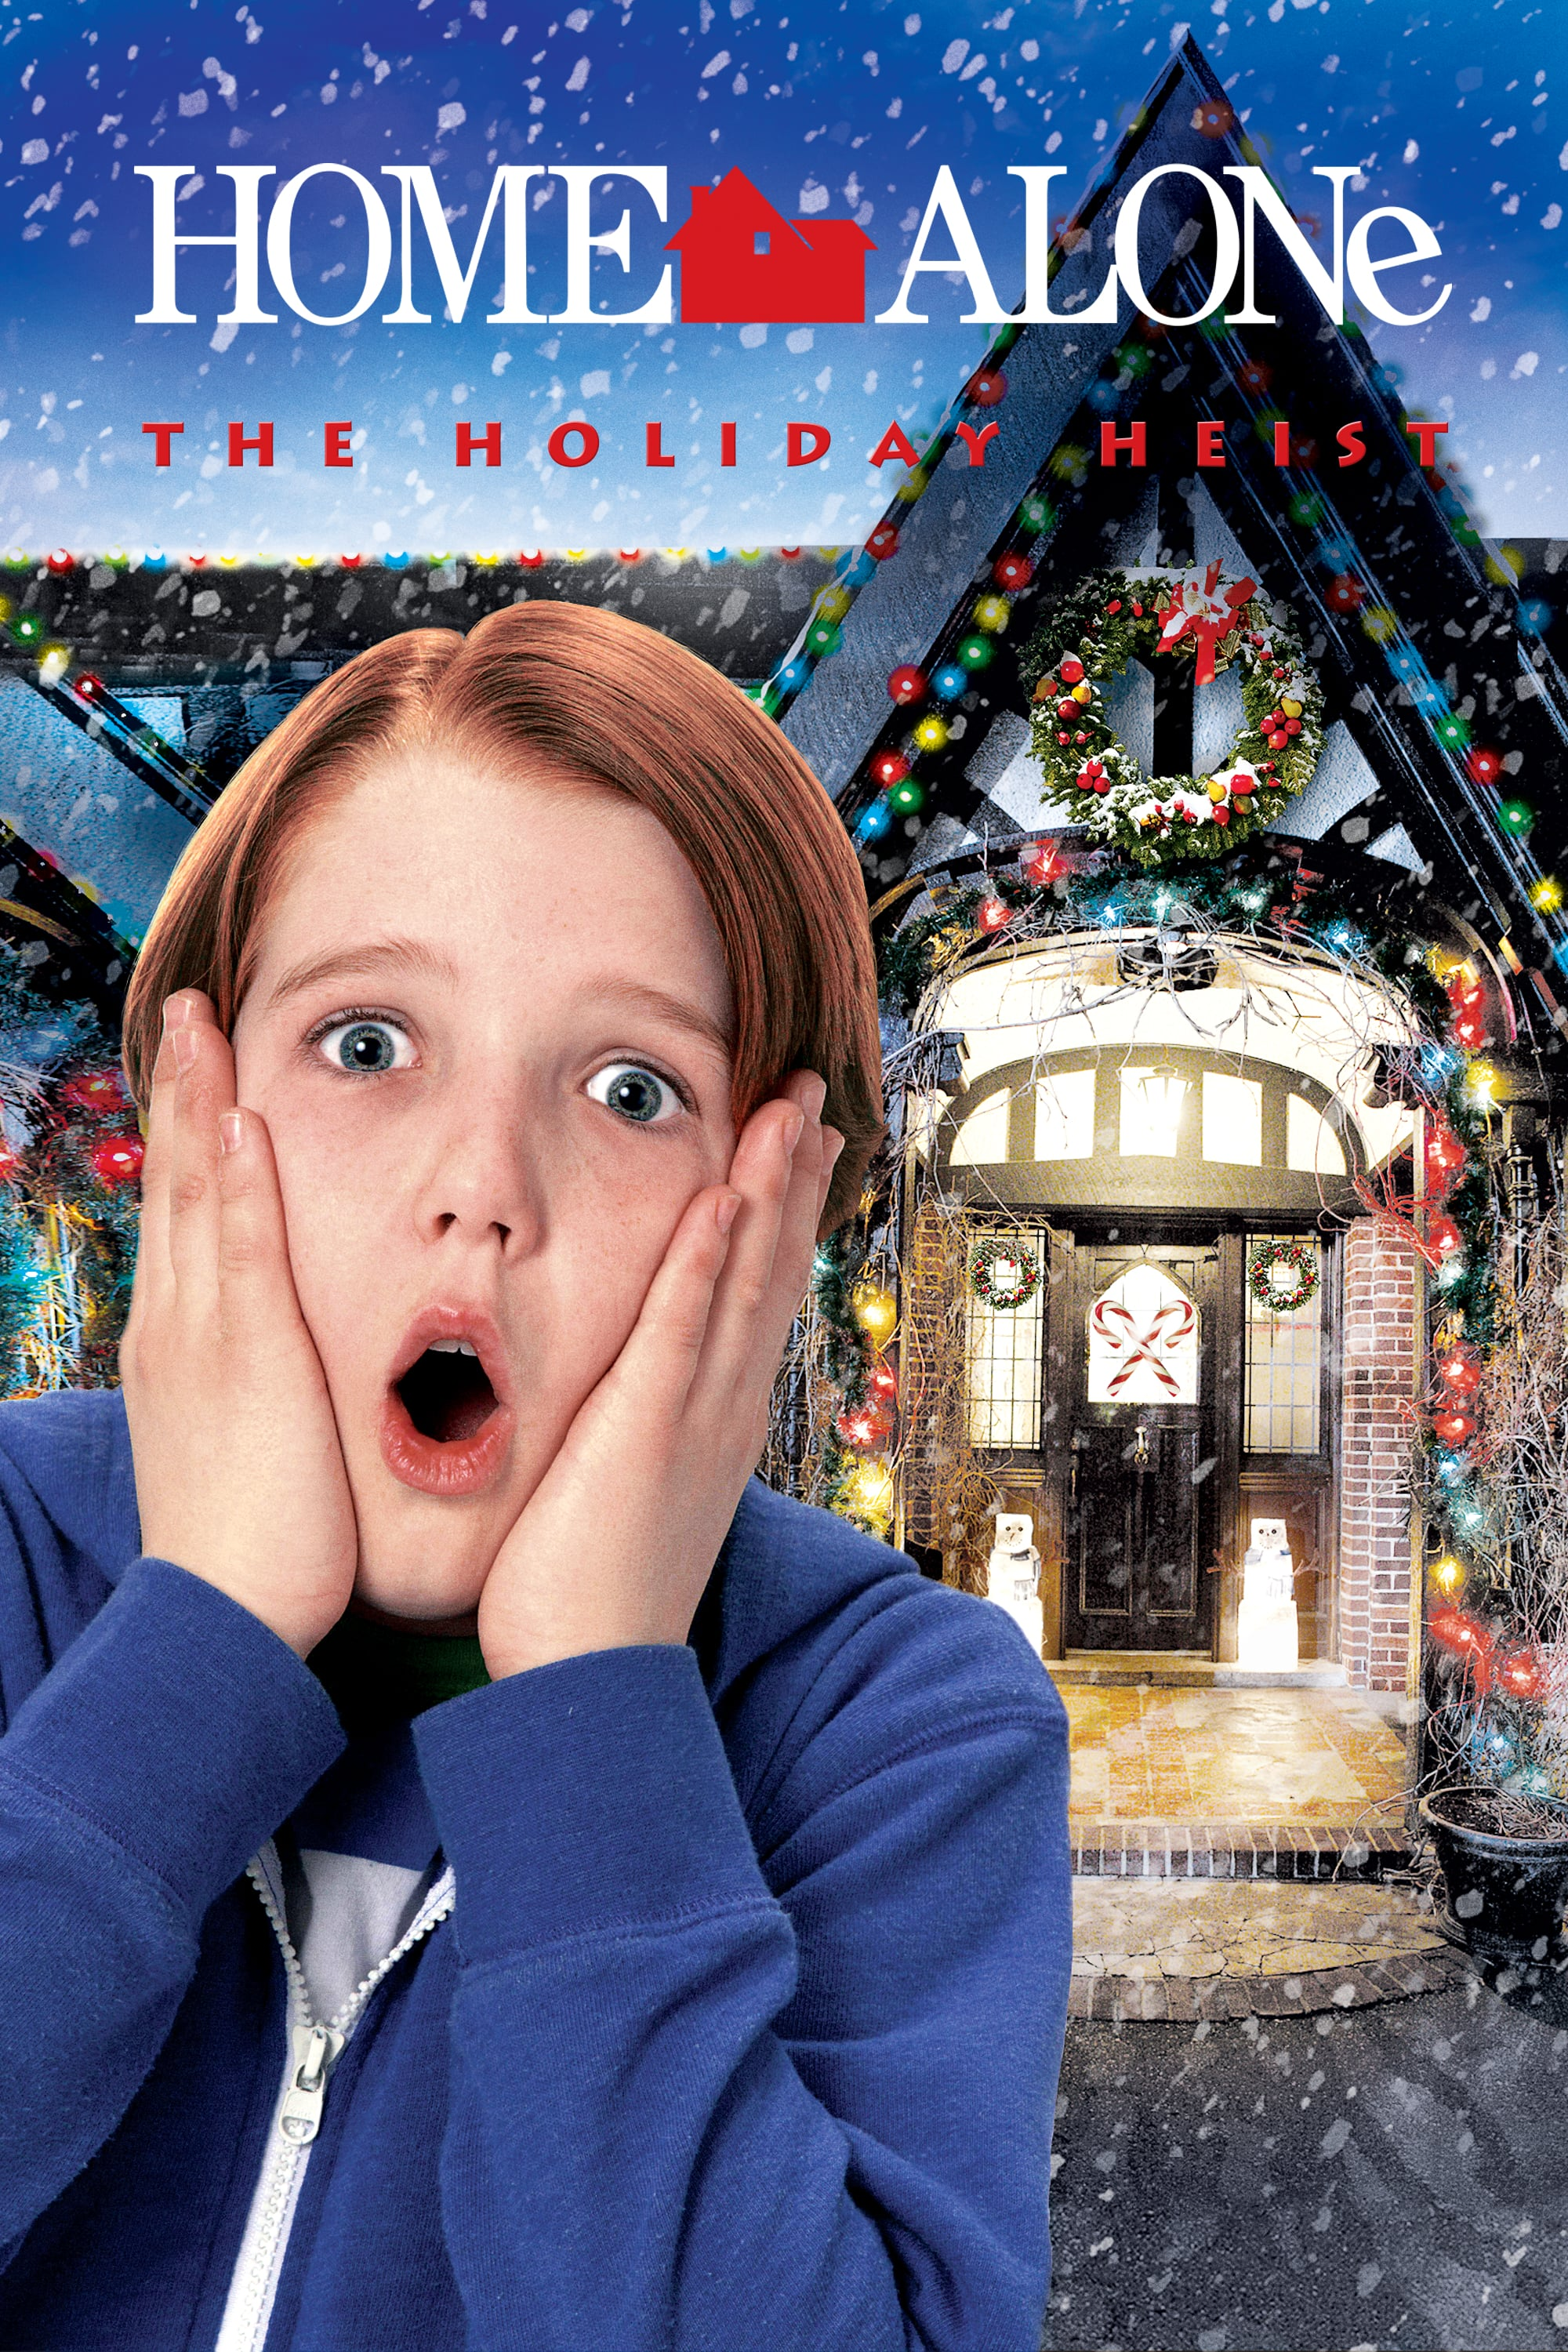 home alone 3 full movie download 480p